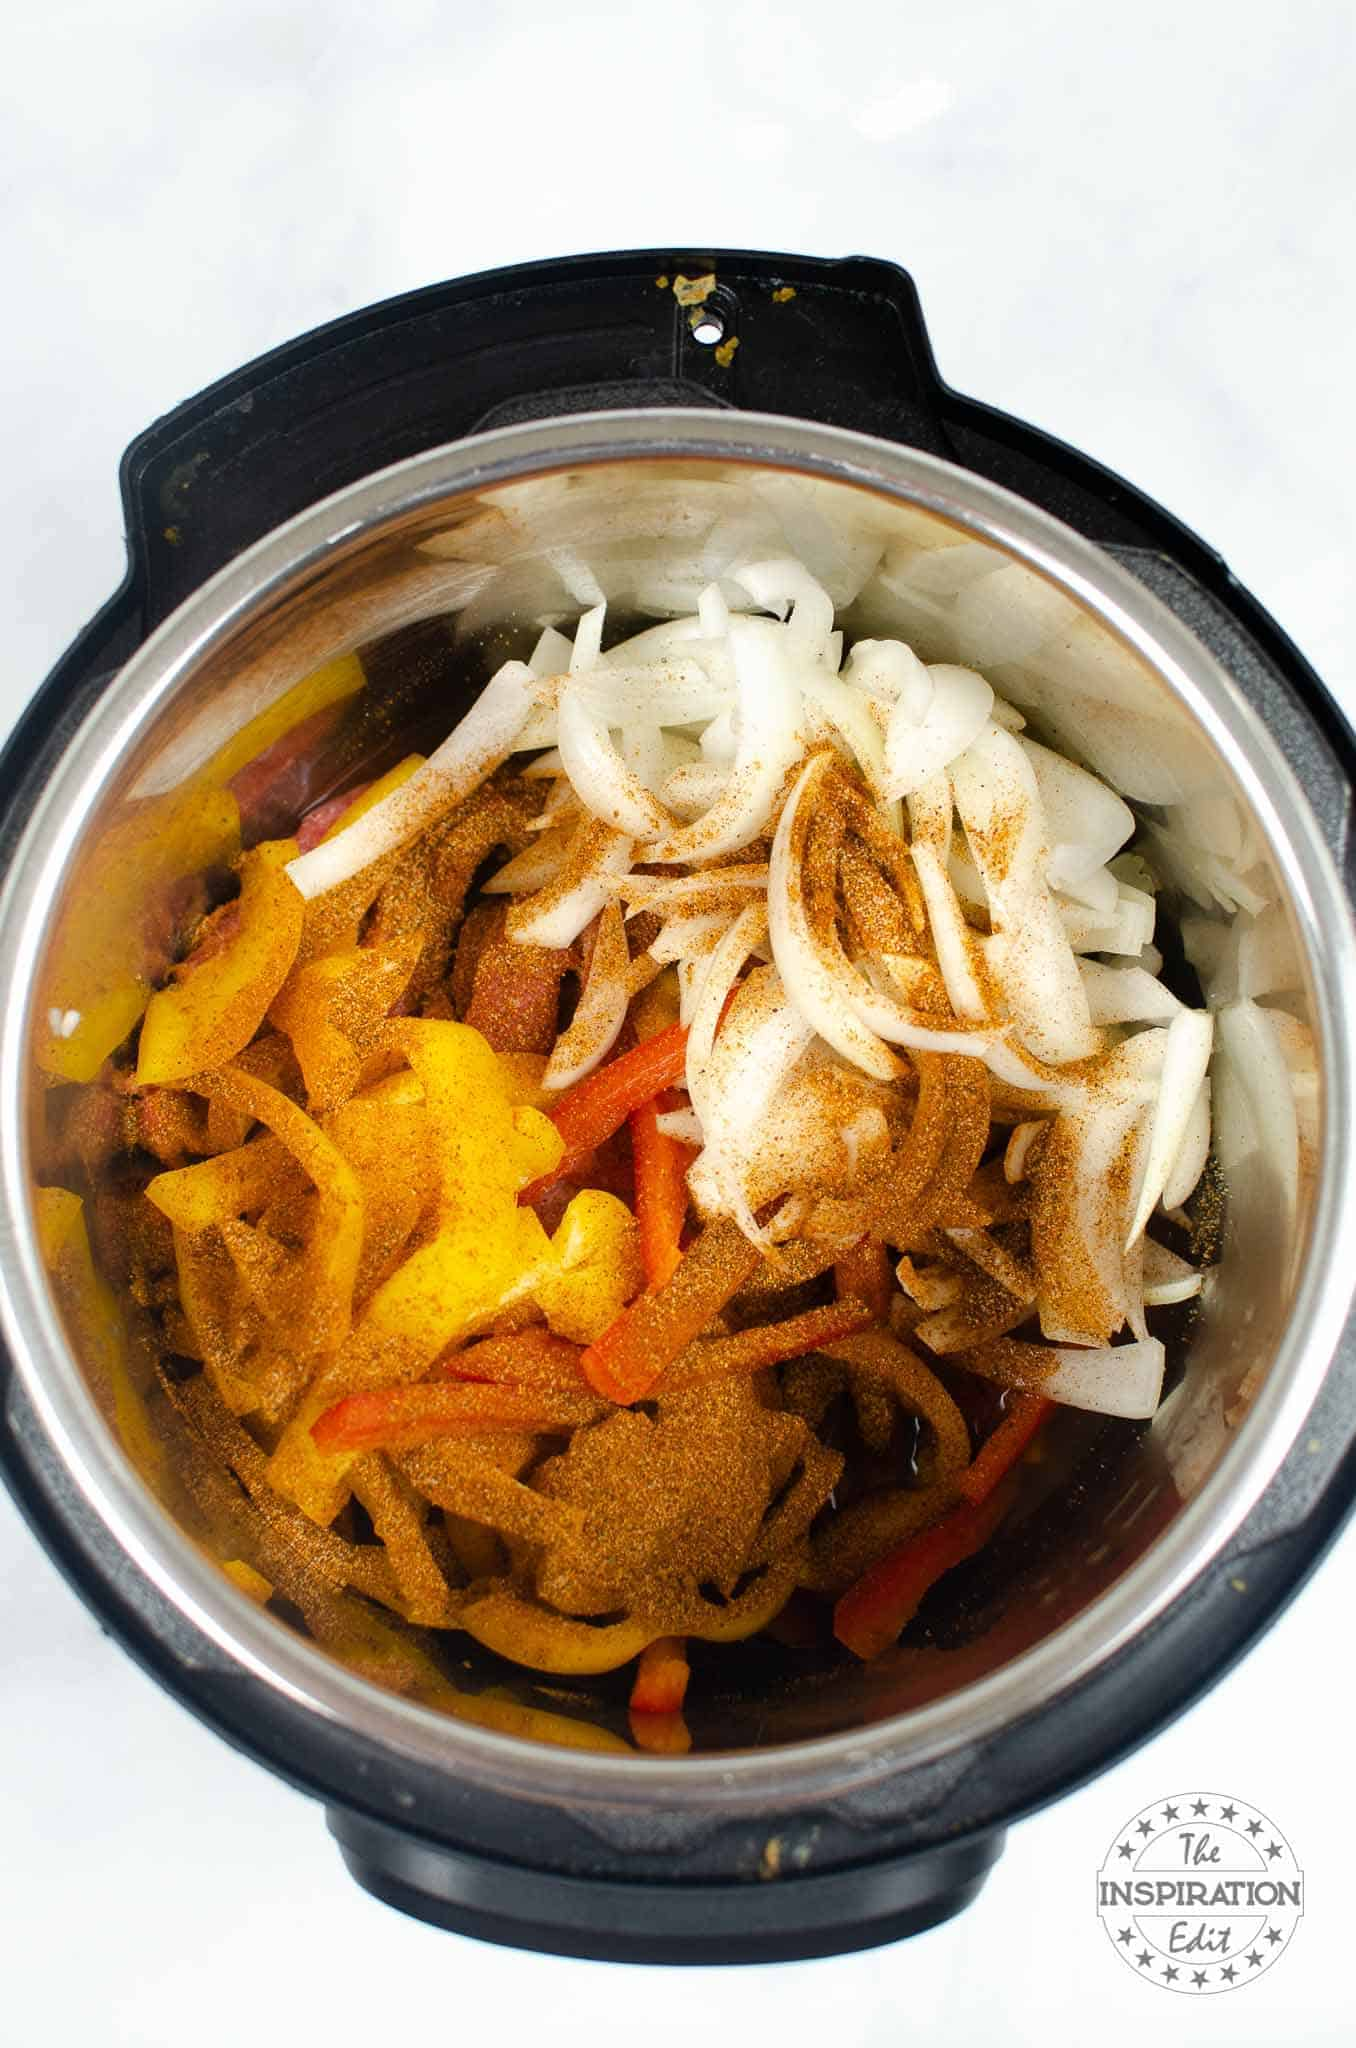 Add all the ingredients to the Instant Pot